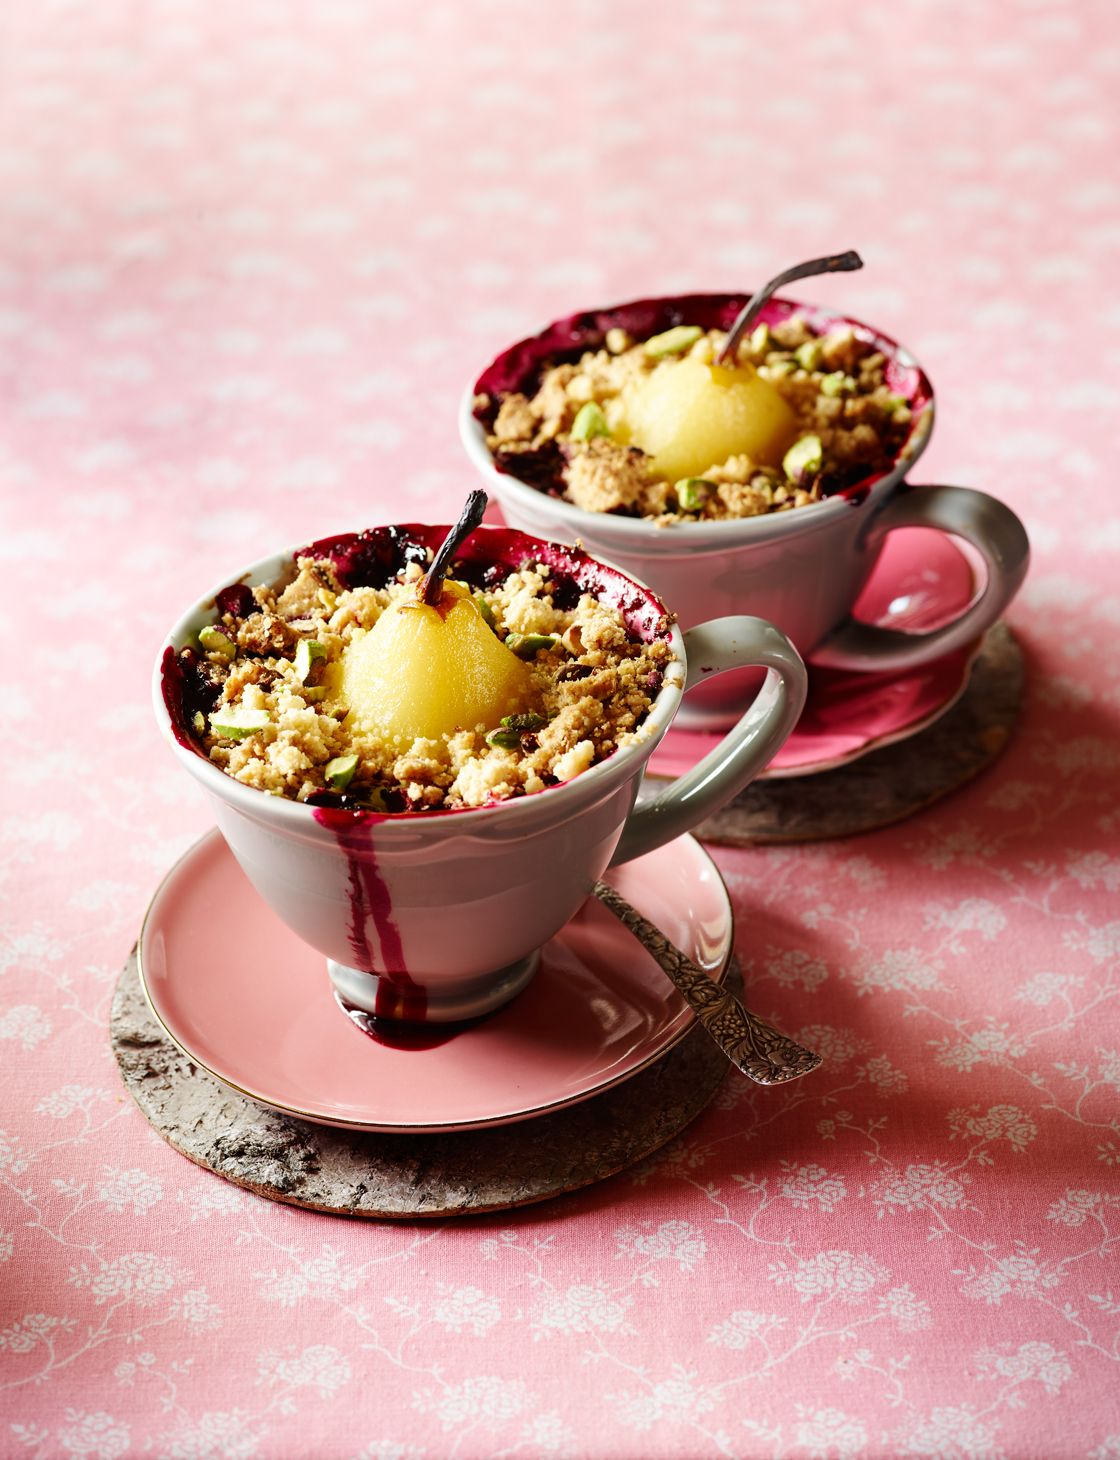 Pear and Forest fruit Crumble from Wonder Kids